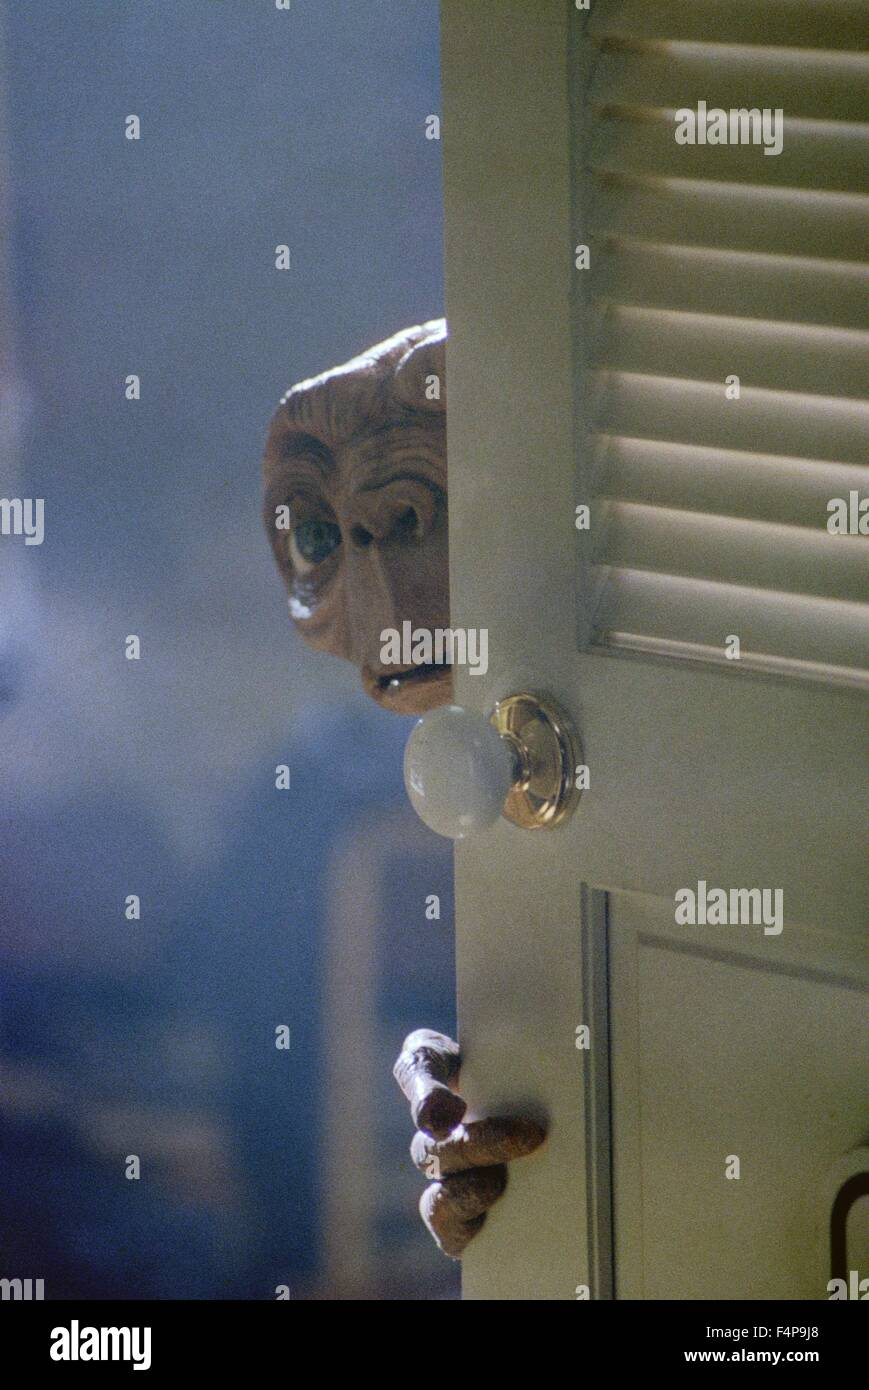 E.T: The Extra-Terrestrial 1982 directed by Steven Spielberg - Stock Image